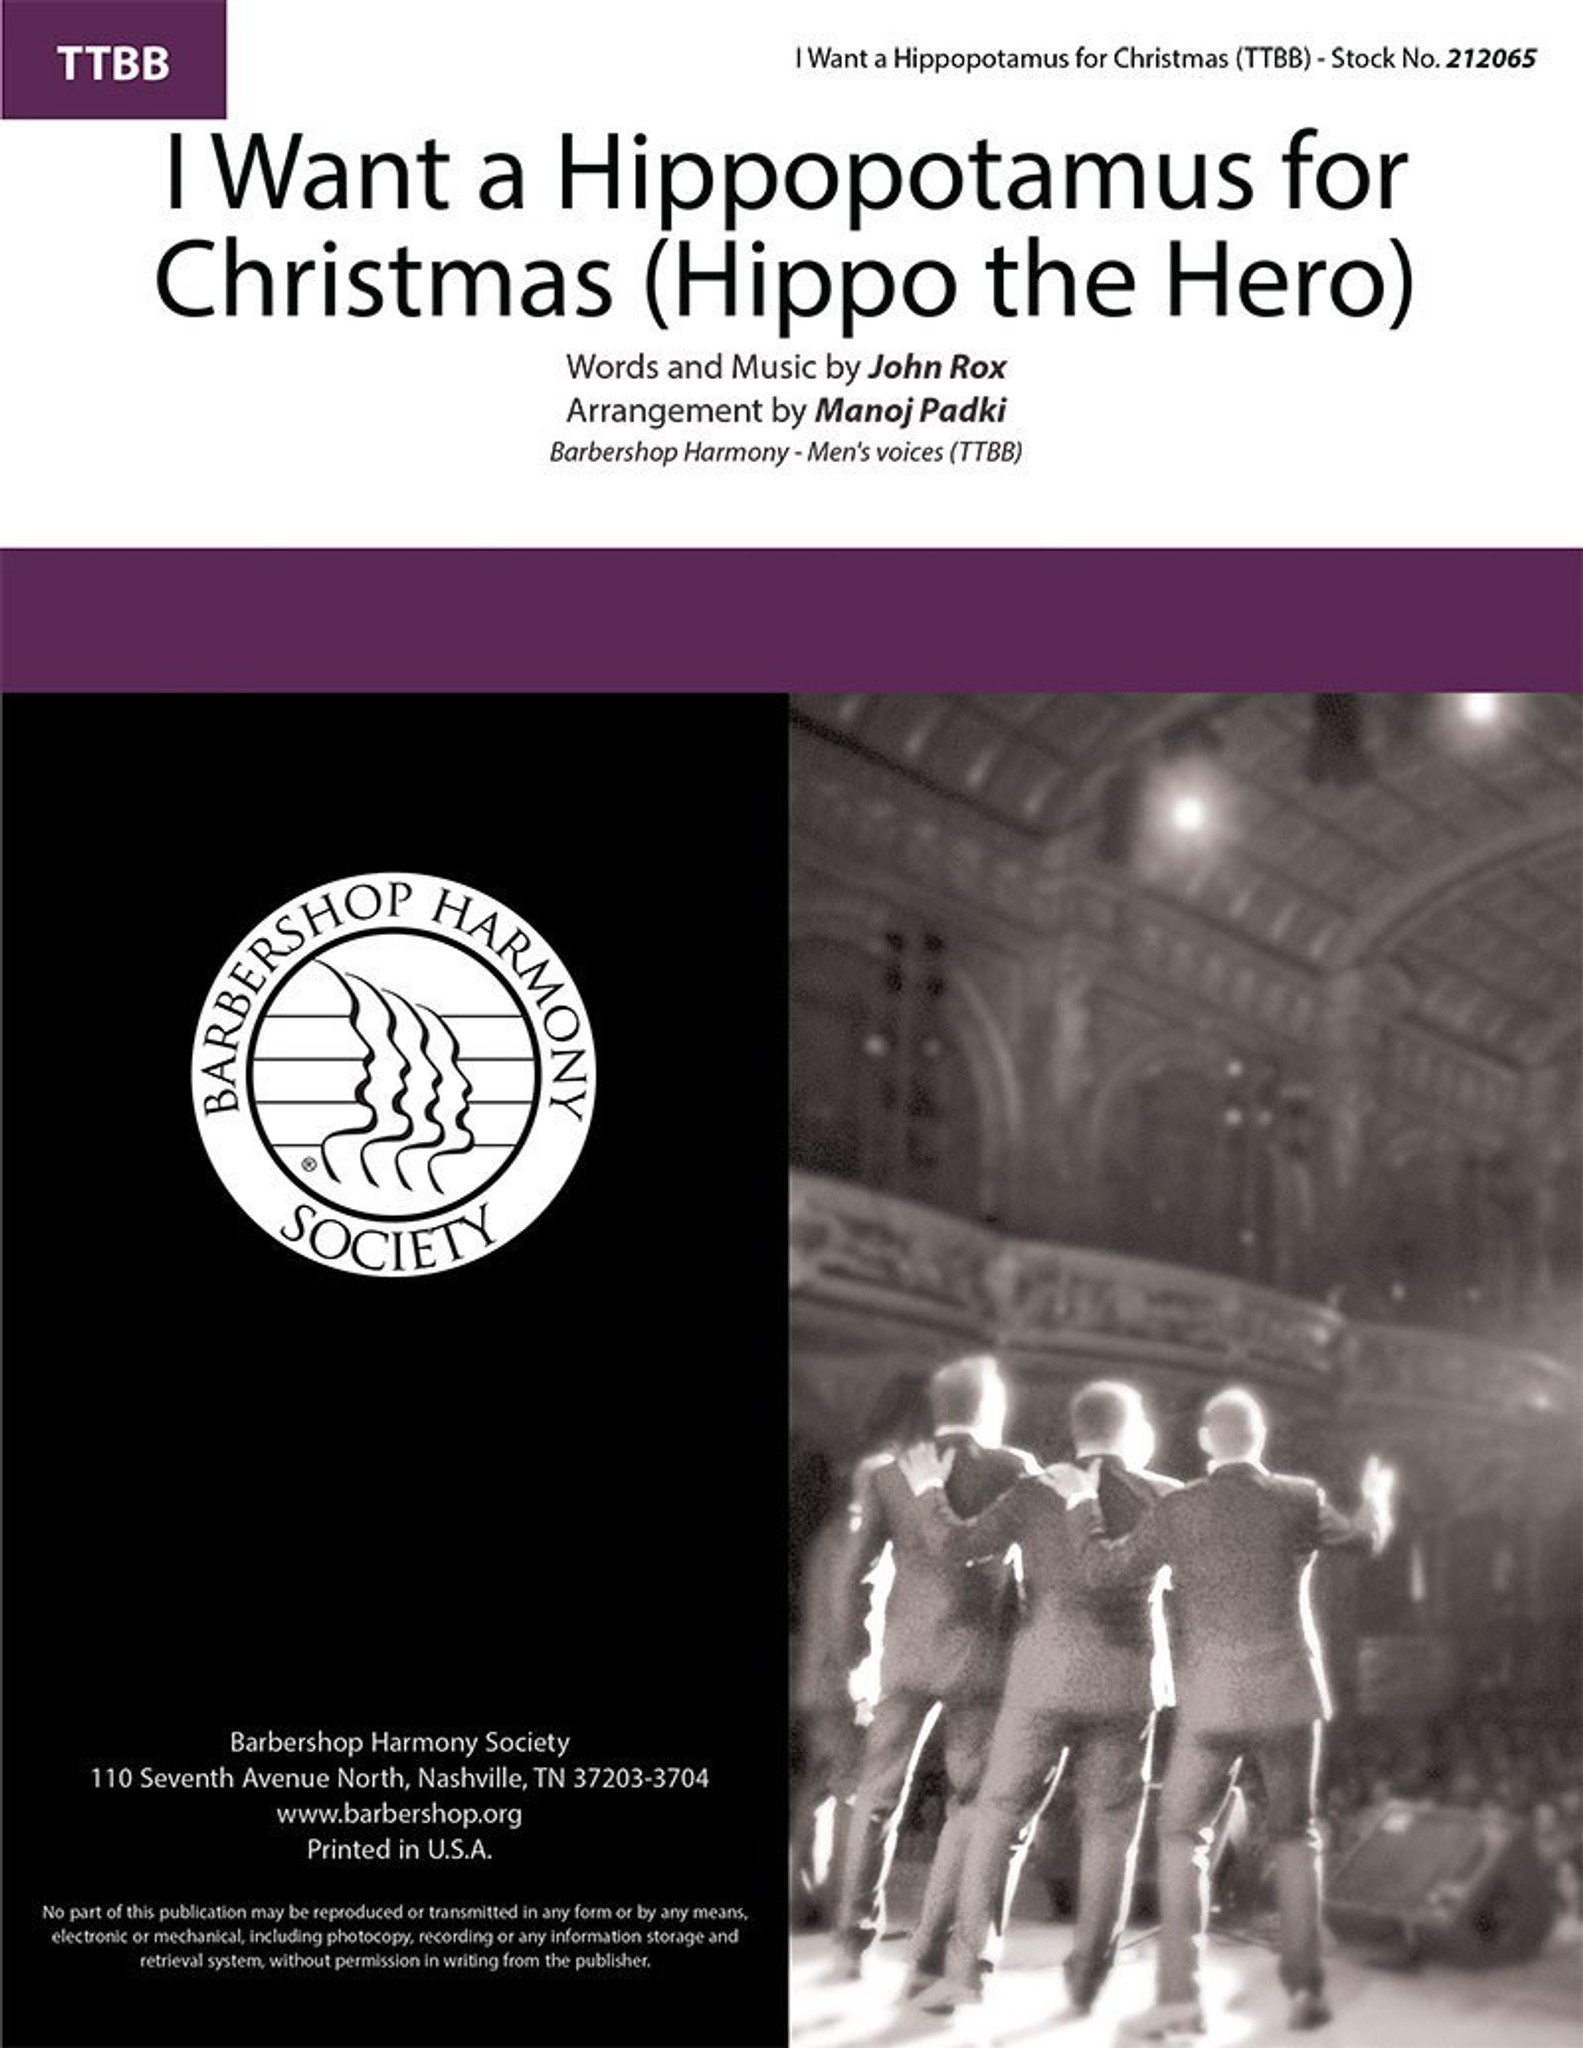 I Want Hippopotamus For Christmas.I Want A Hippopotamus For Christmas Hippo The Hero Ttbb Arr Padki Download